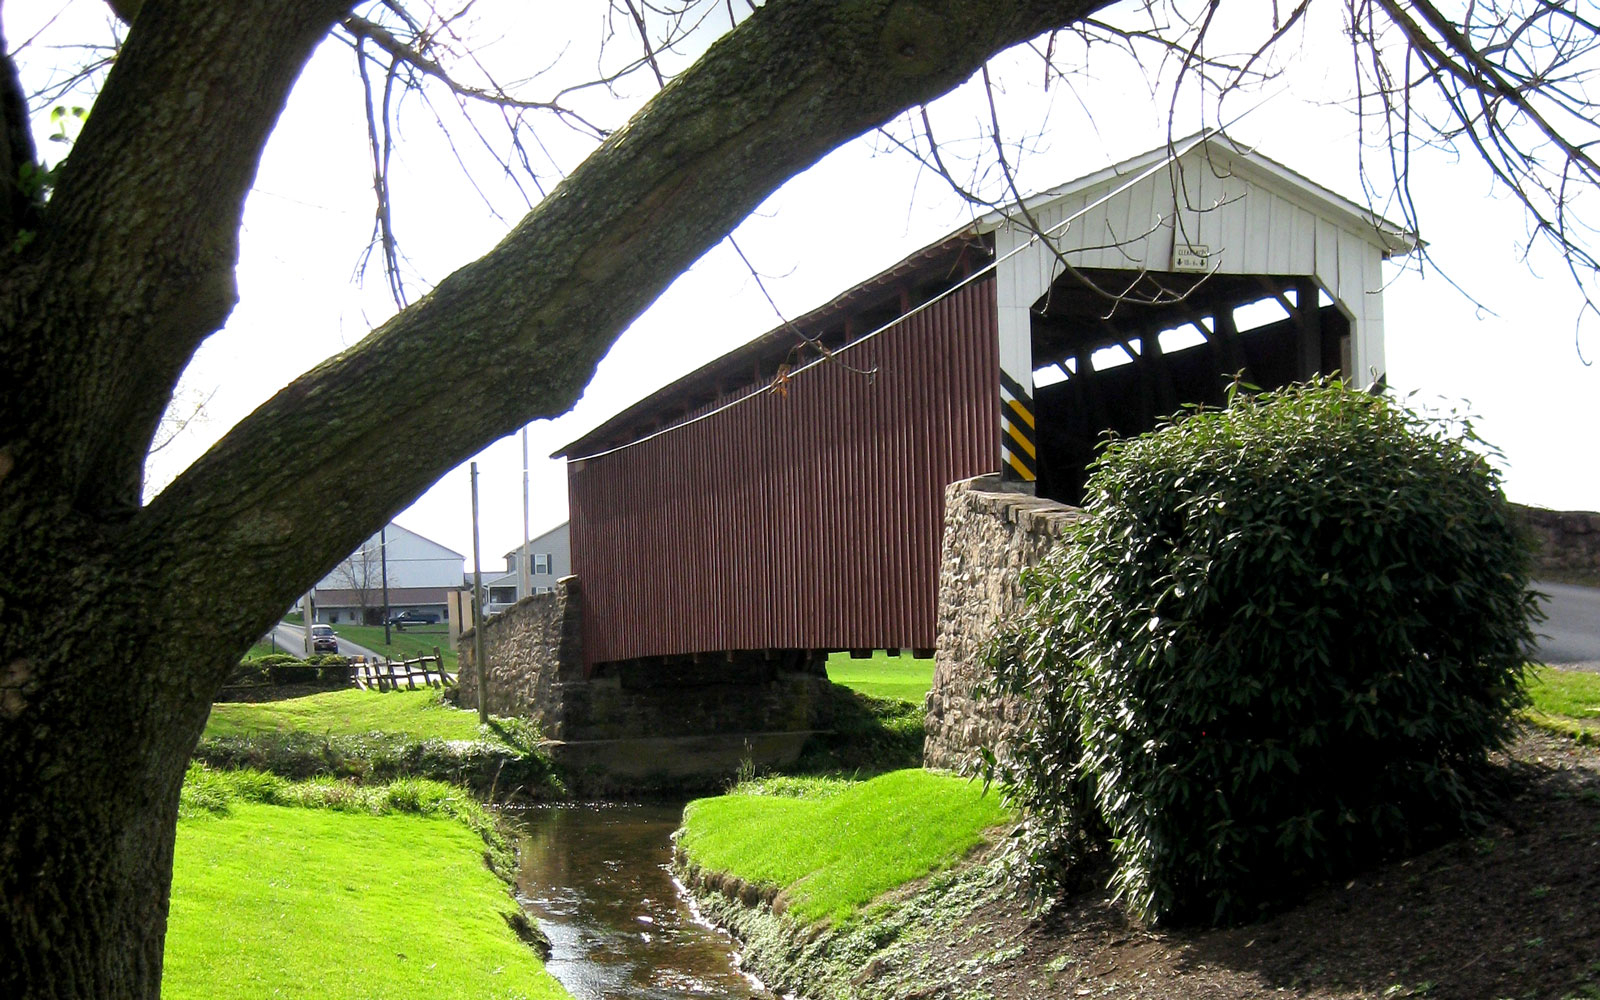 Weaver's Mill Bridge